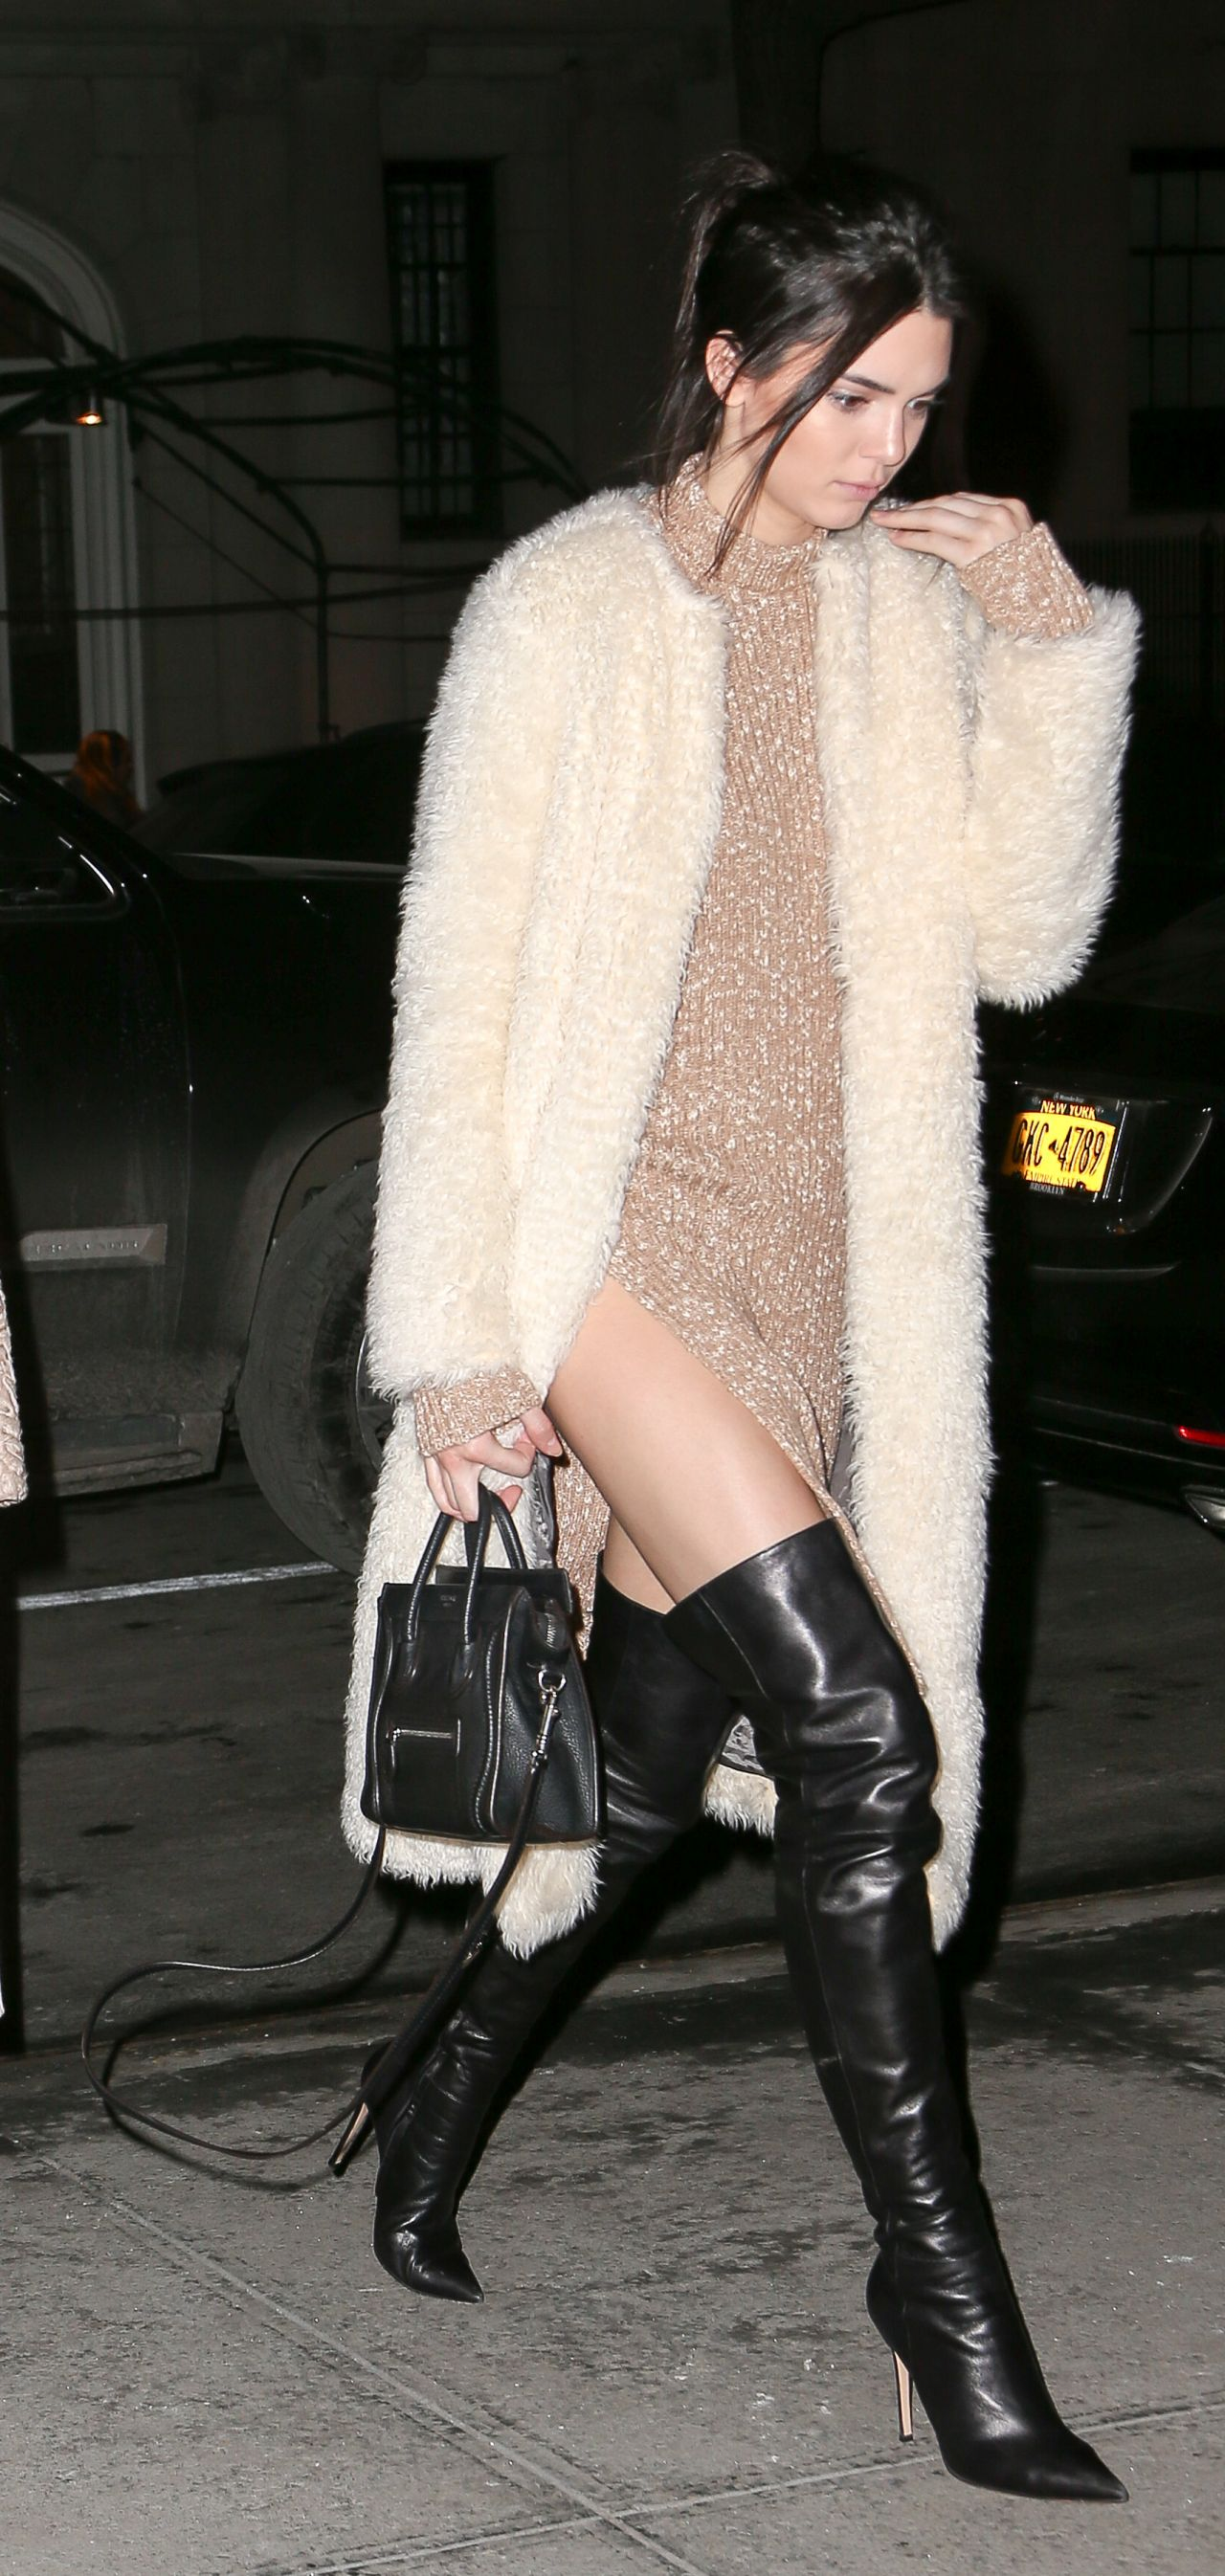 kendall-jenner-arrives-at-her-hotel-in-new-york-february-2015_